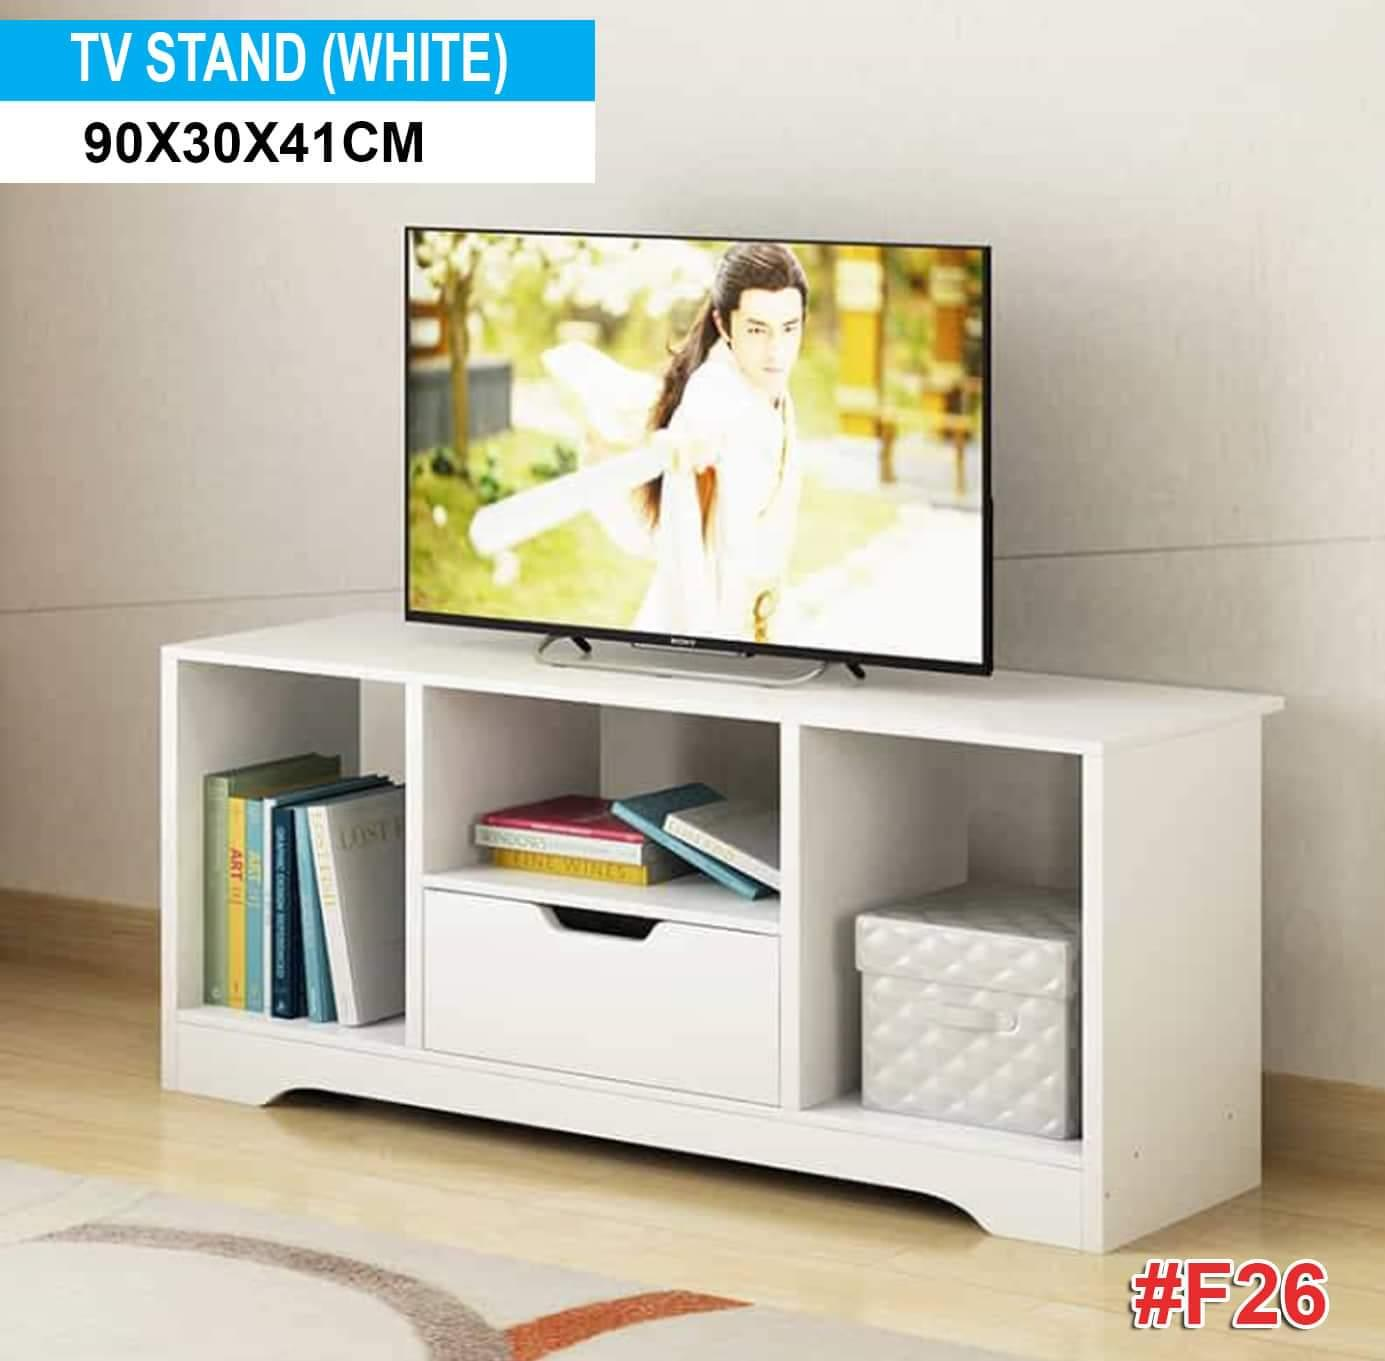 Wooden Tv Table F26